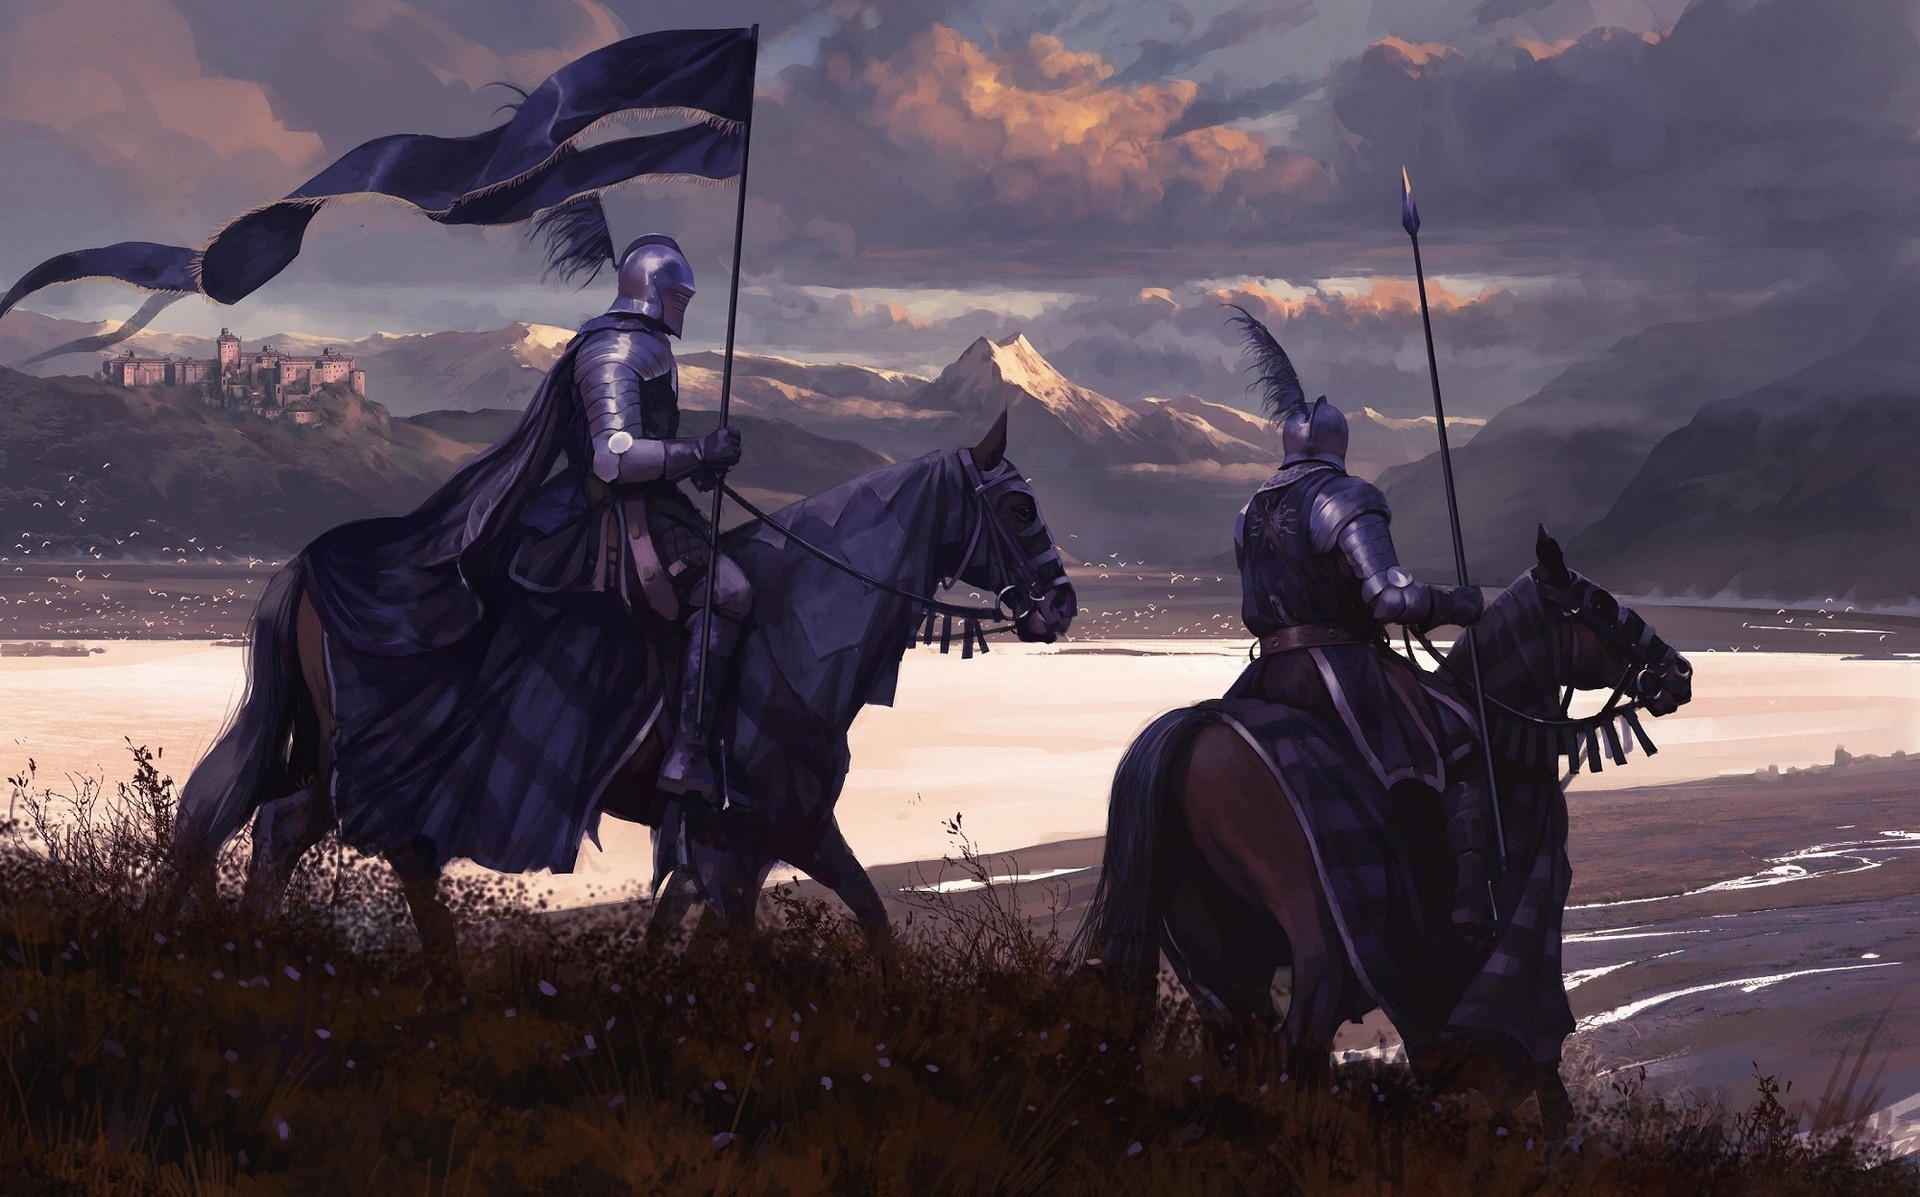 Wallpaper of Armor, Banner, Horse, Knight, Warrior background & HD image  Knight